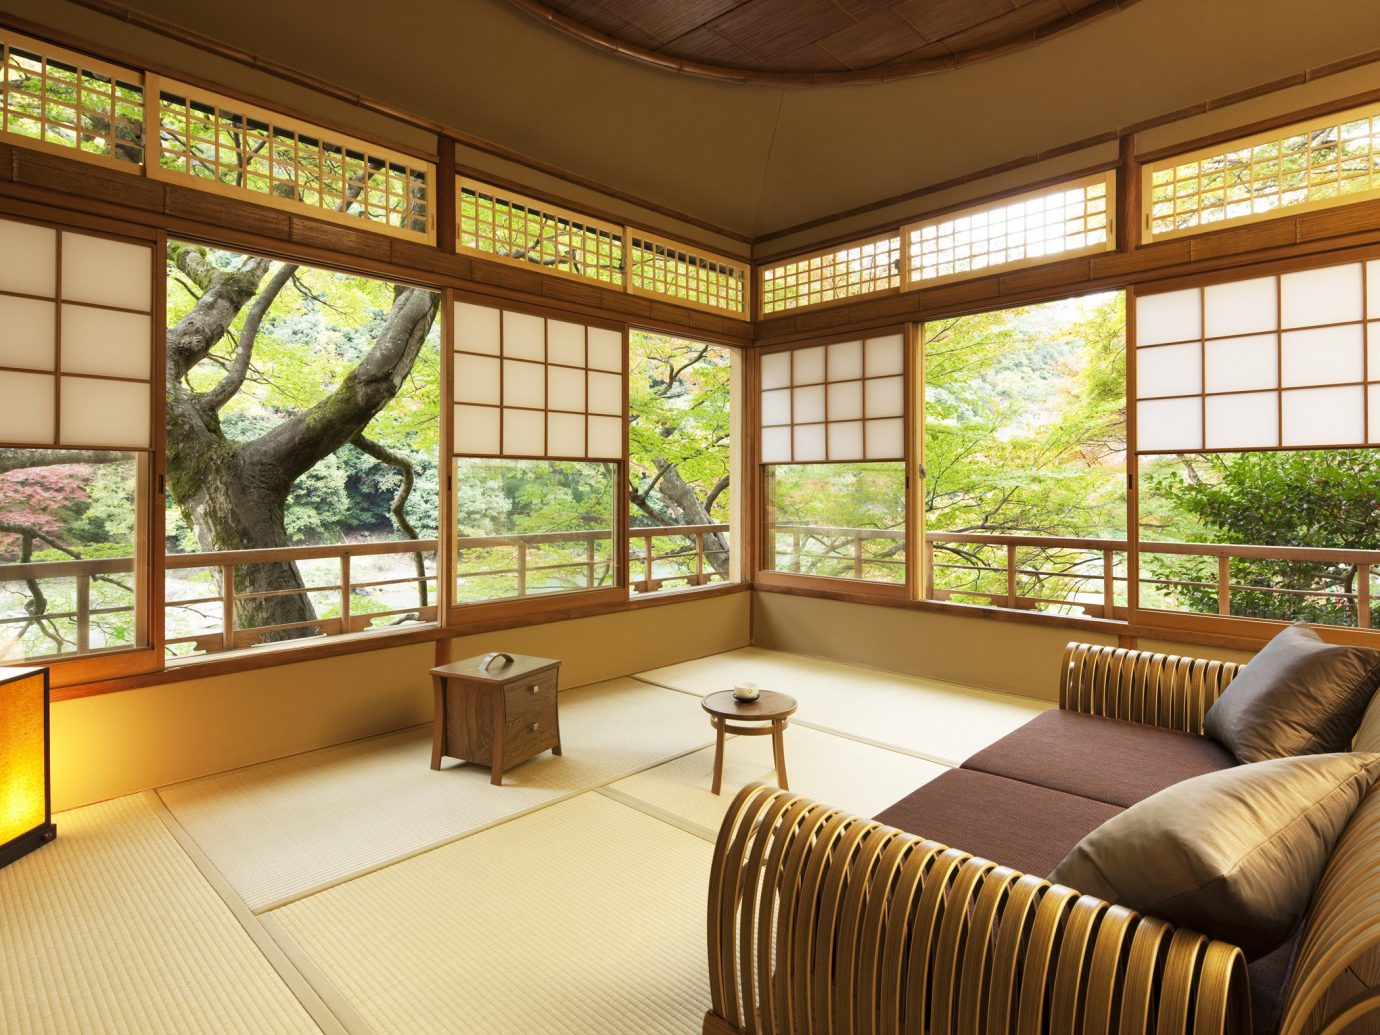 Beauty Health + Wellness Japan Kyoto San Francisco Travel Tips indoor sofa room Living floor window interior design ceiling real estate estate living room home daylighting house area furniture